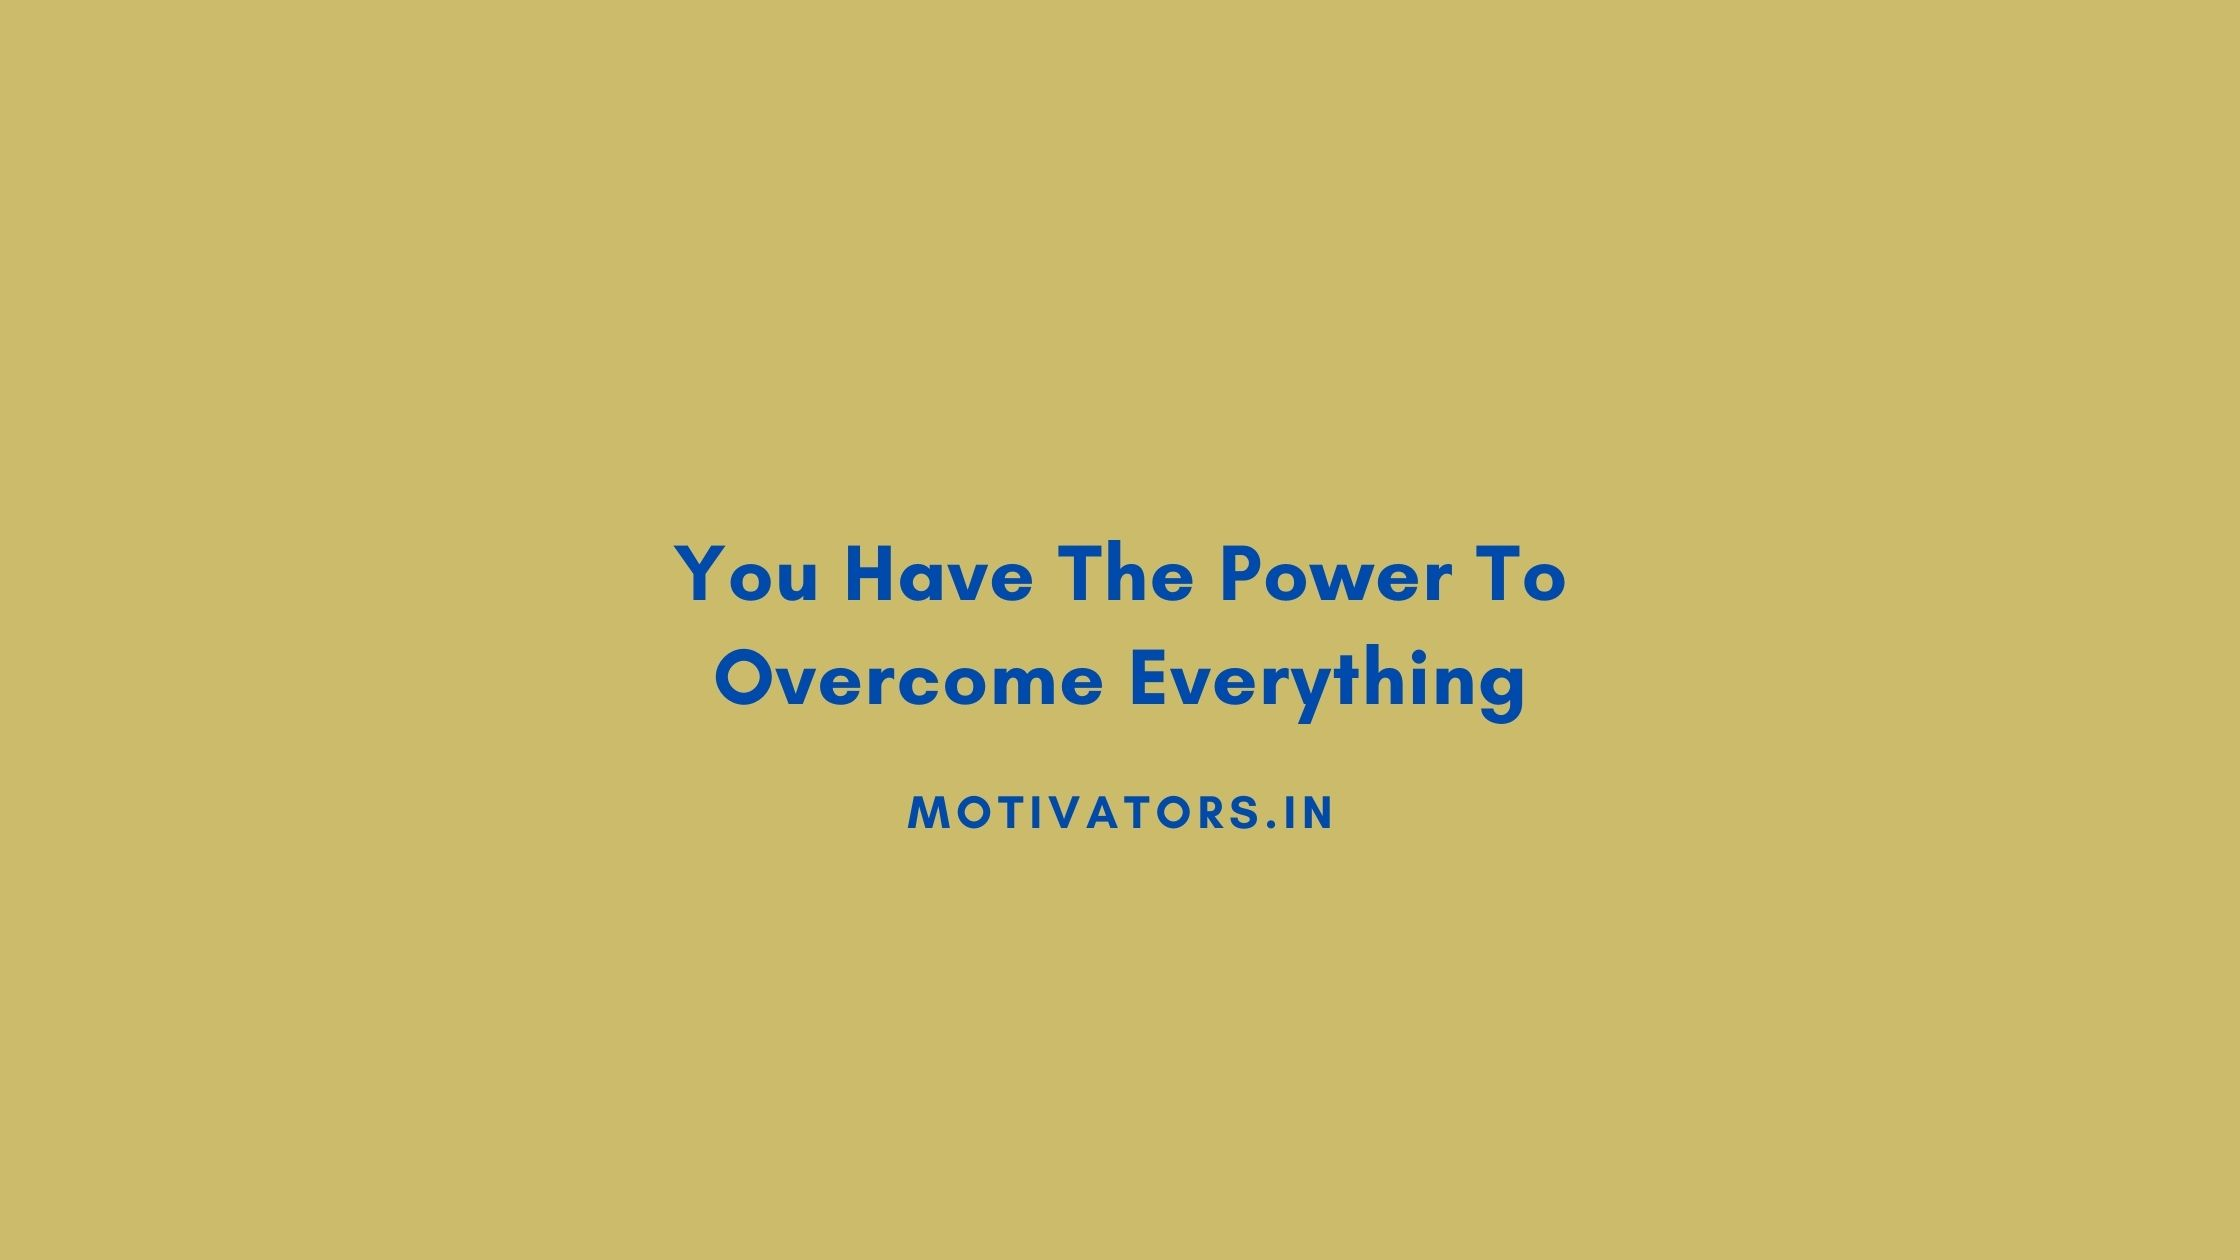 You Have The Power To Overcome Everything